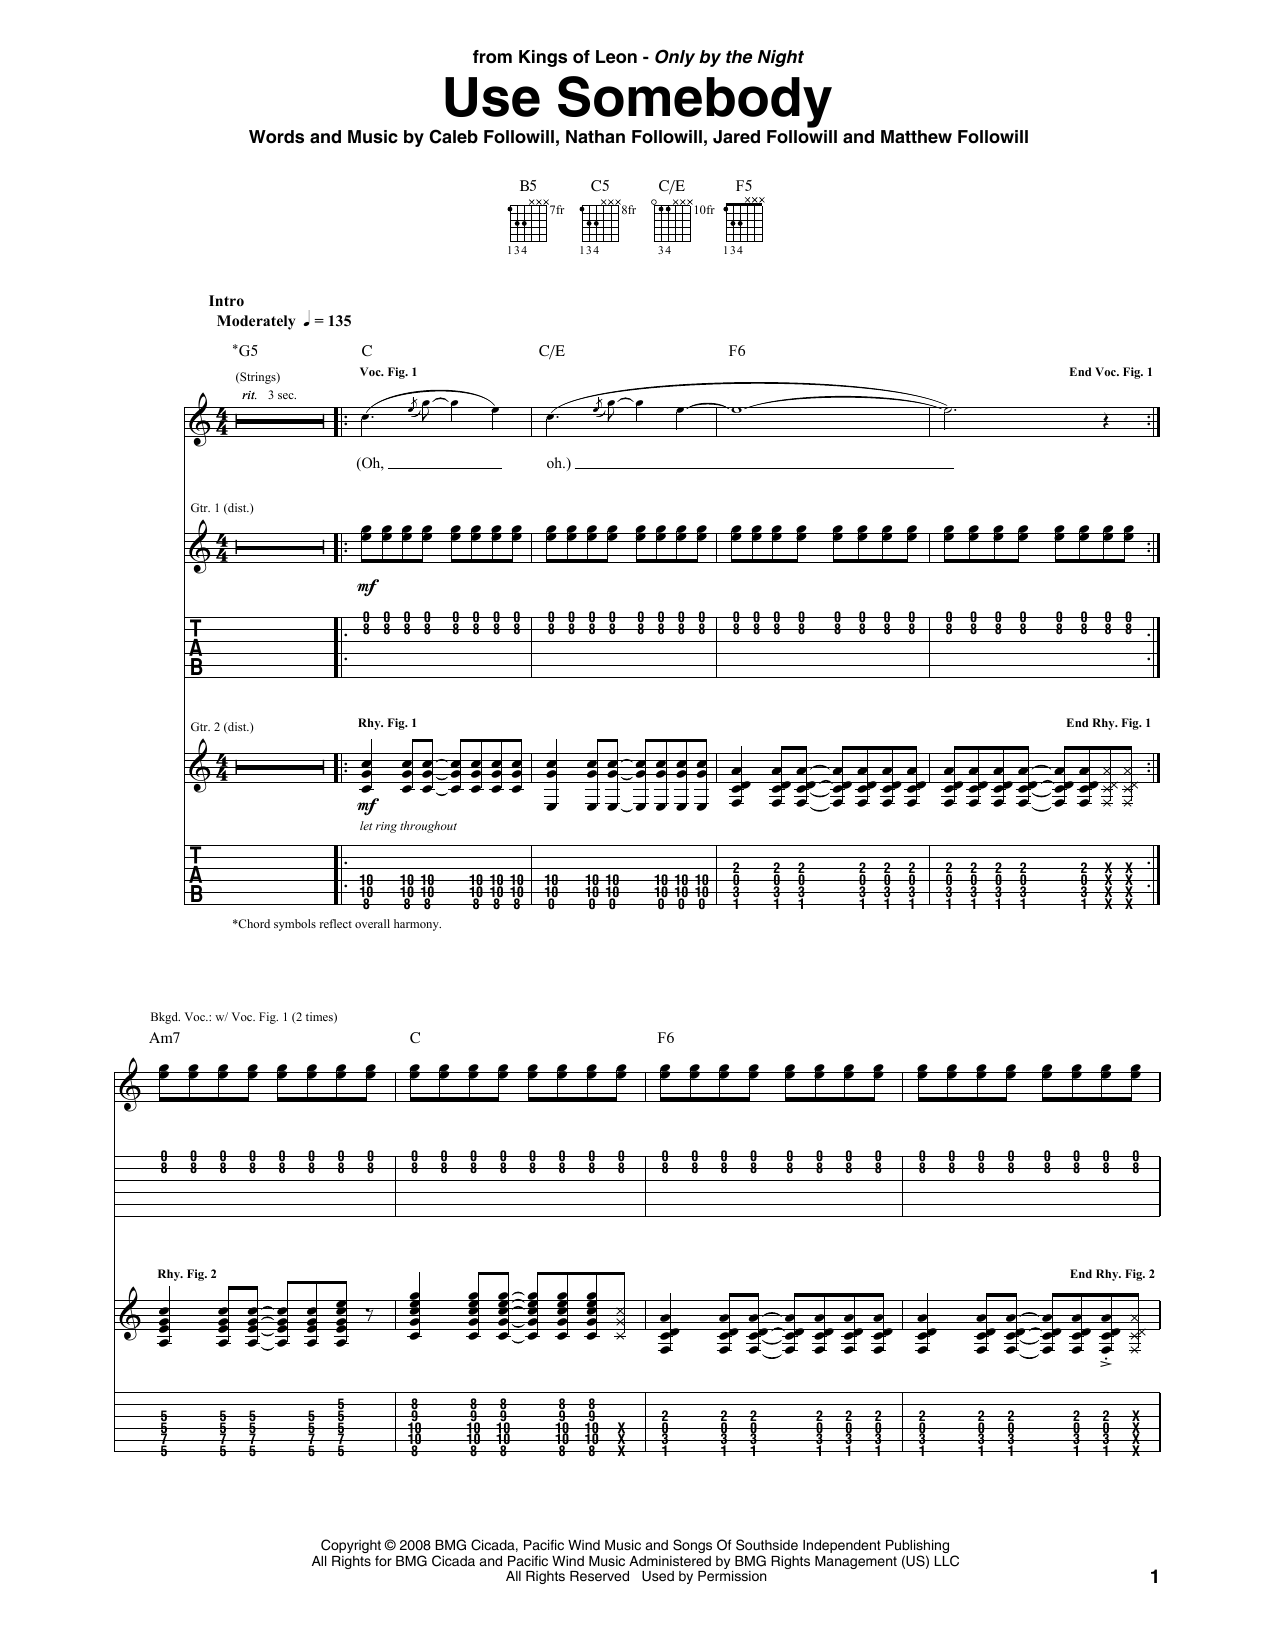 Sheet Music Digital Files To Print Licensed Kings Of Leon Digital